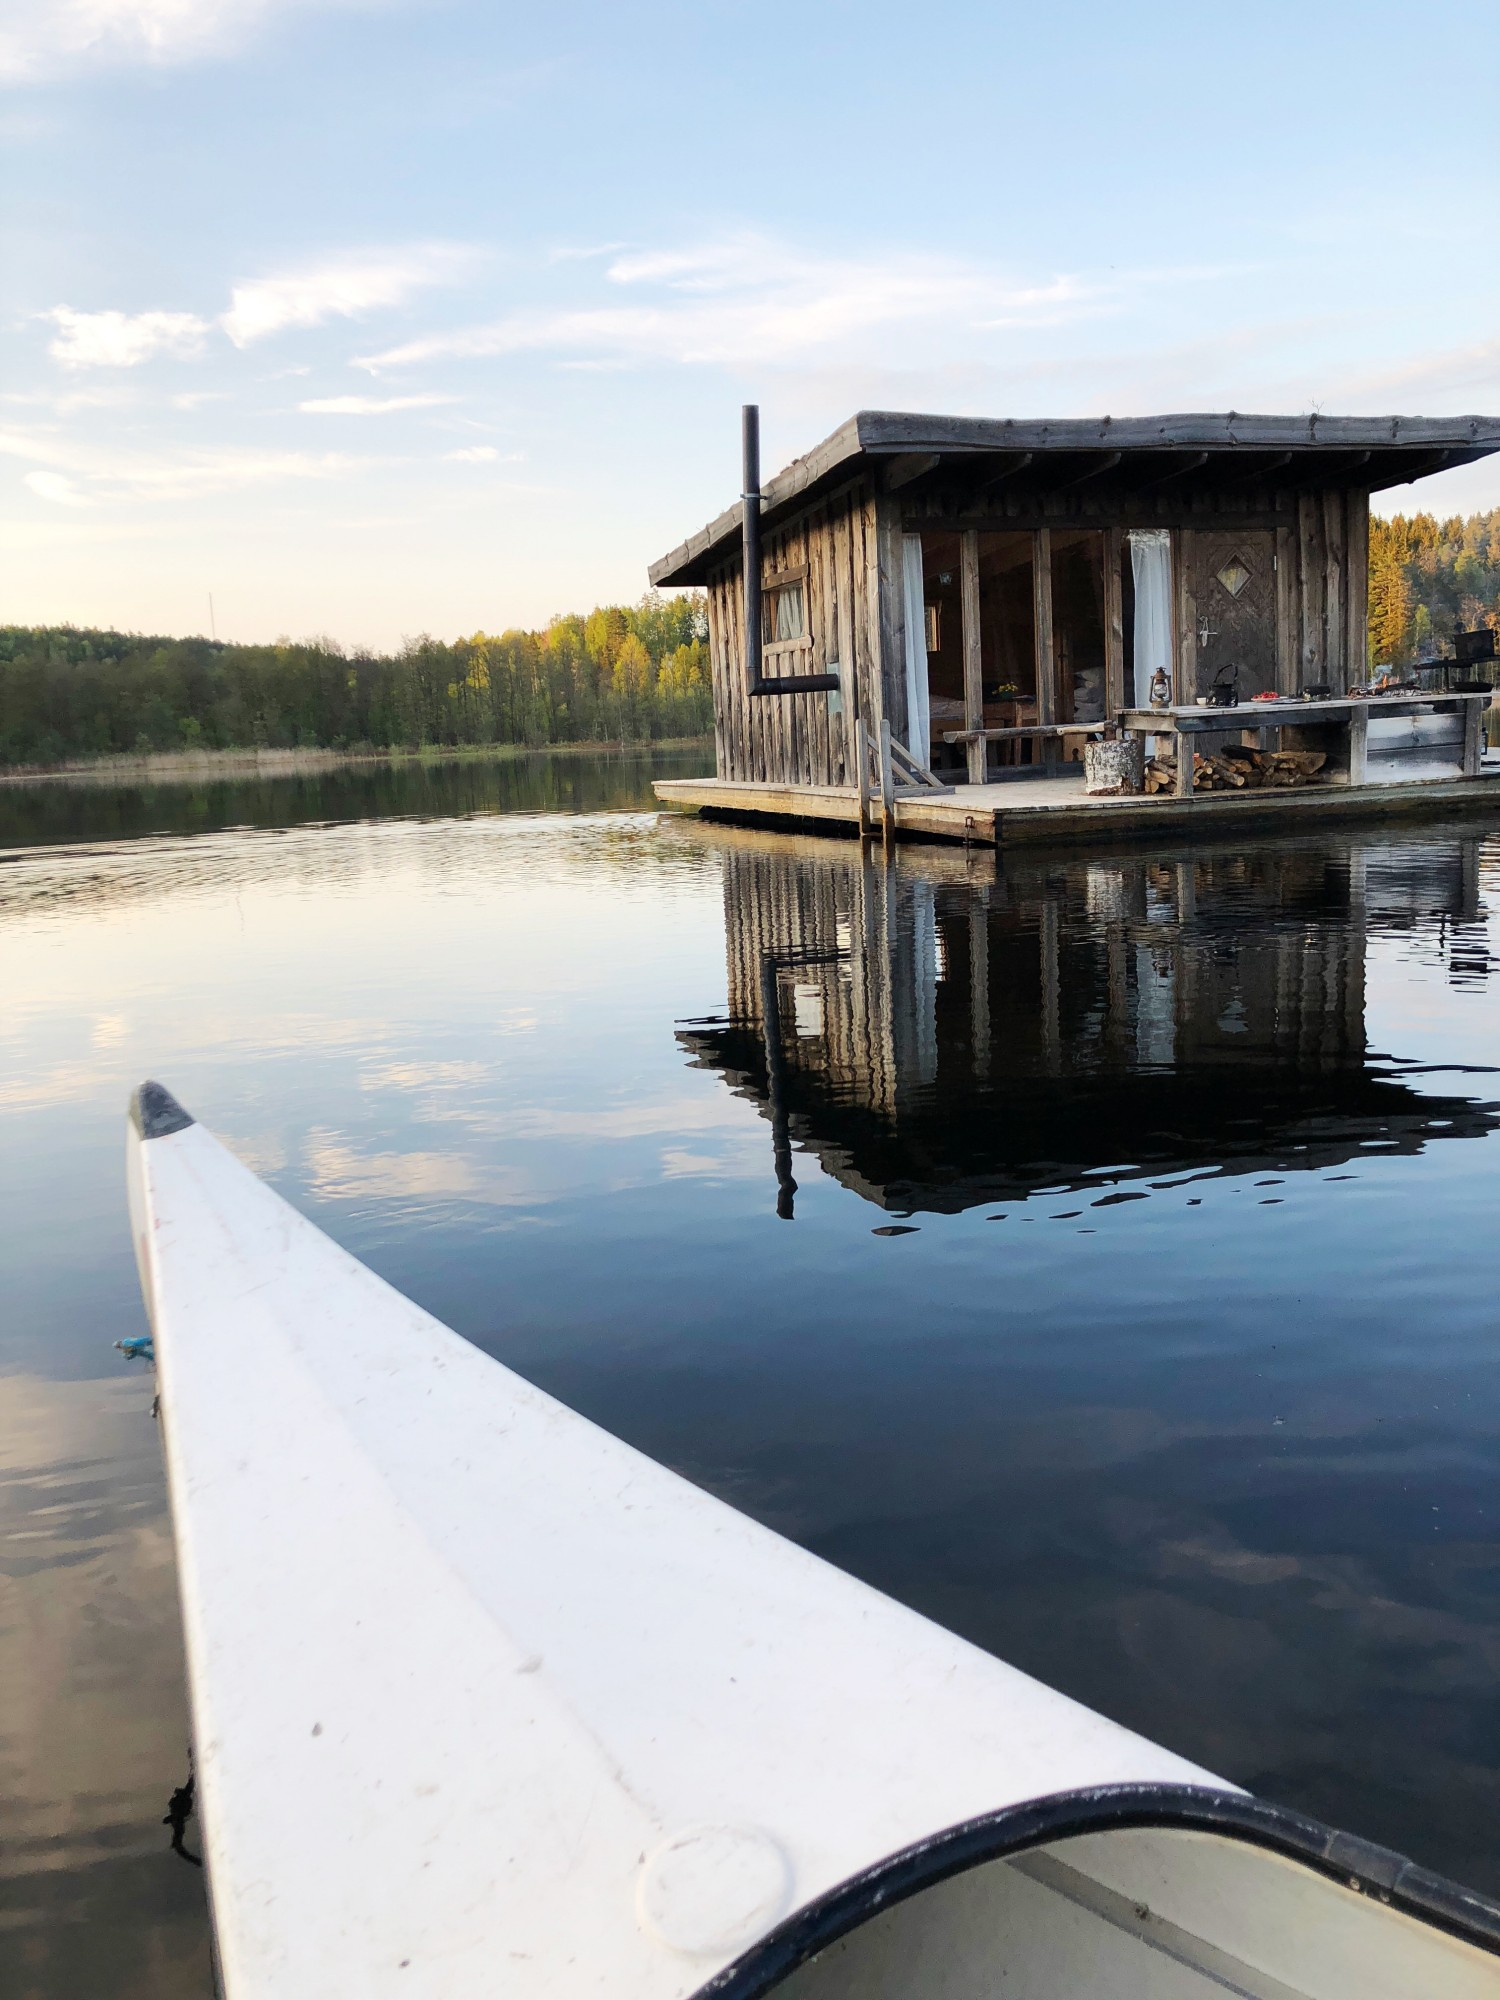 Naturbyn floating cabin